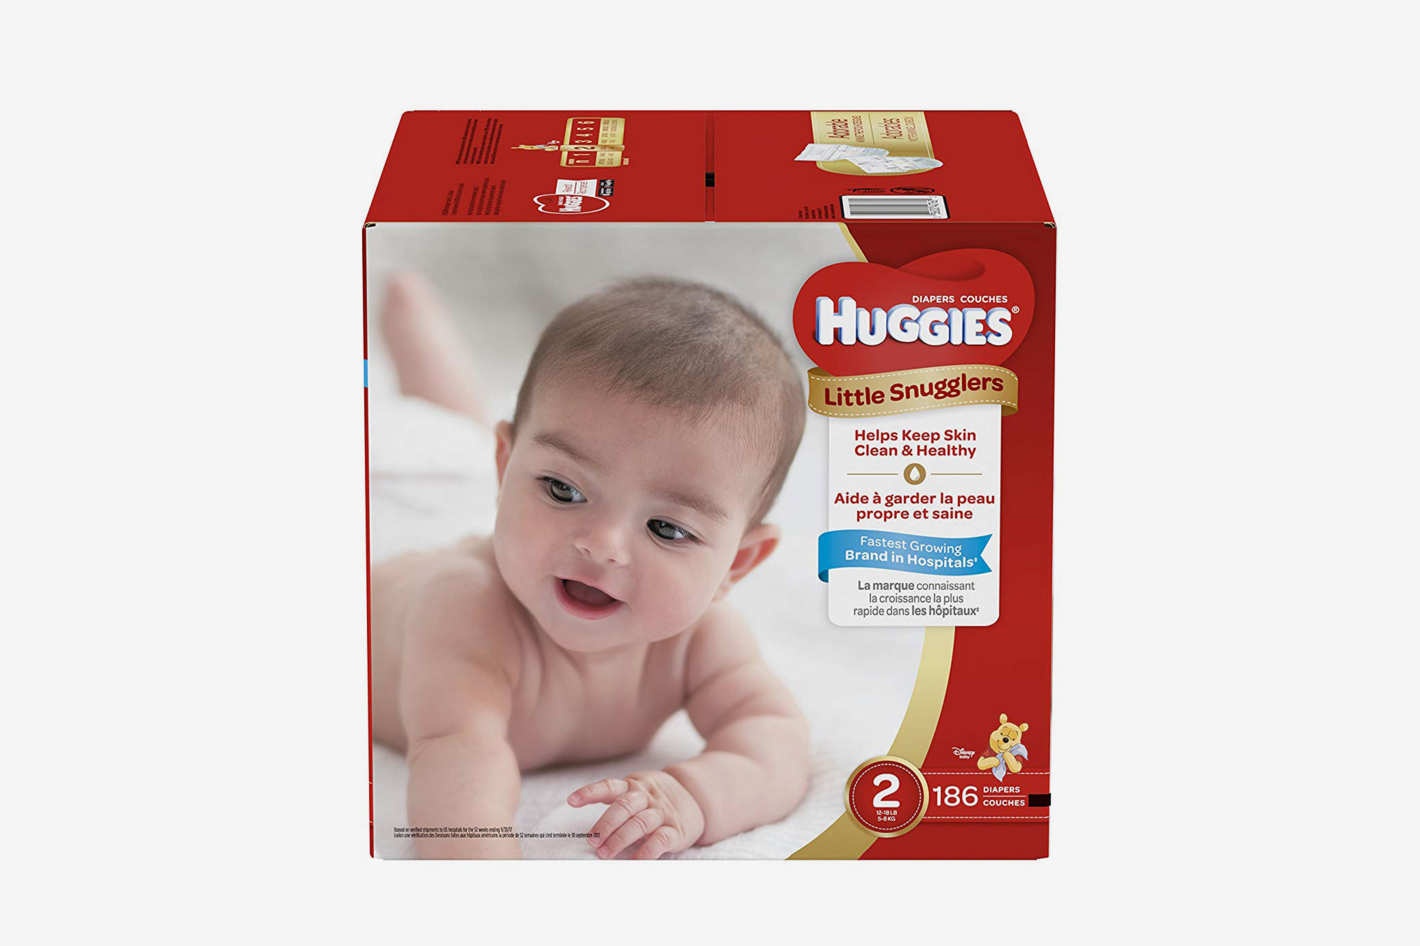 HUGGIES Little Snugglers Baby Diapers, Size 2, for 12-18 lbs, One Month Supply (186 Count)